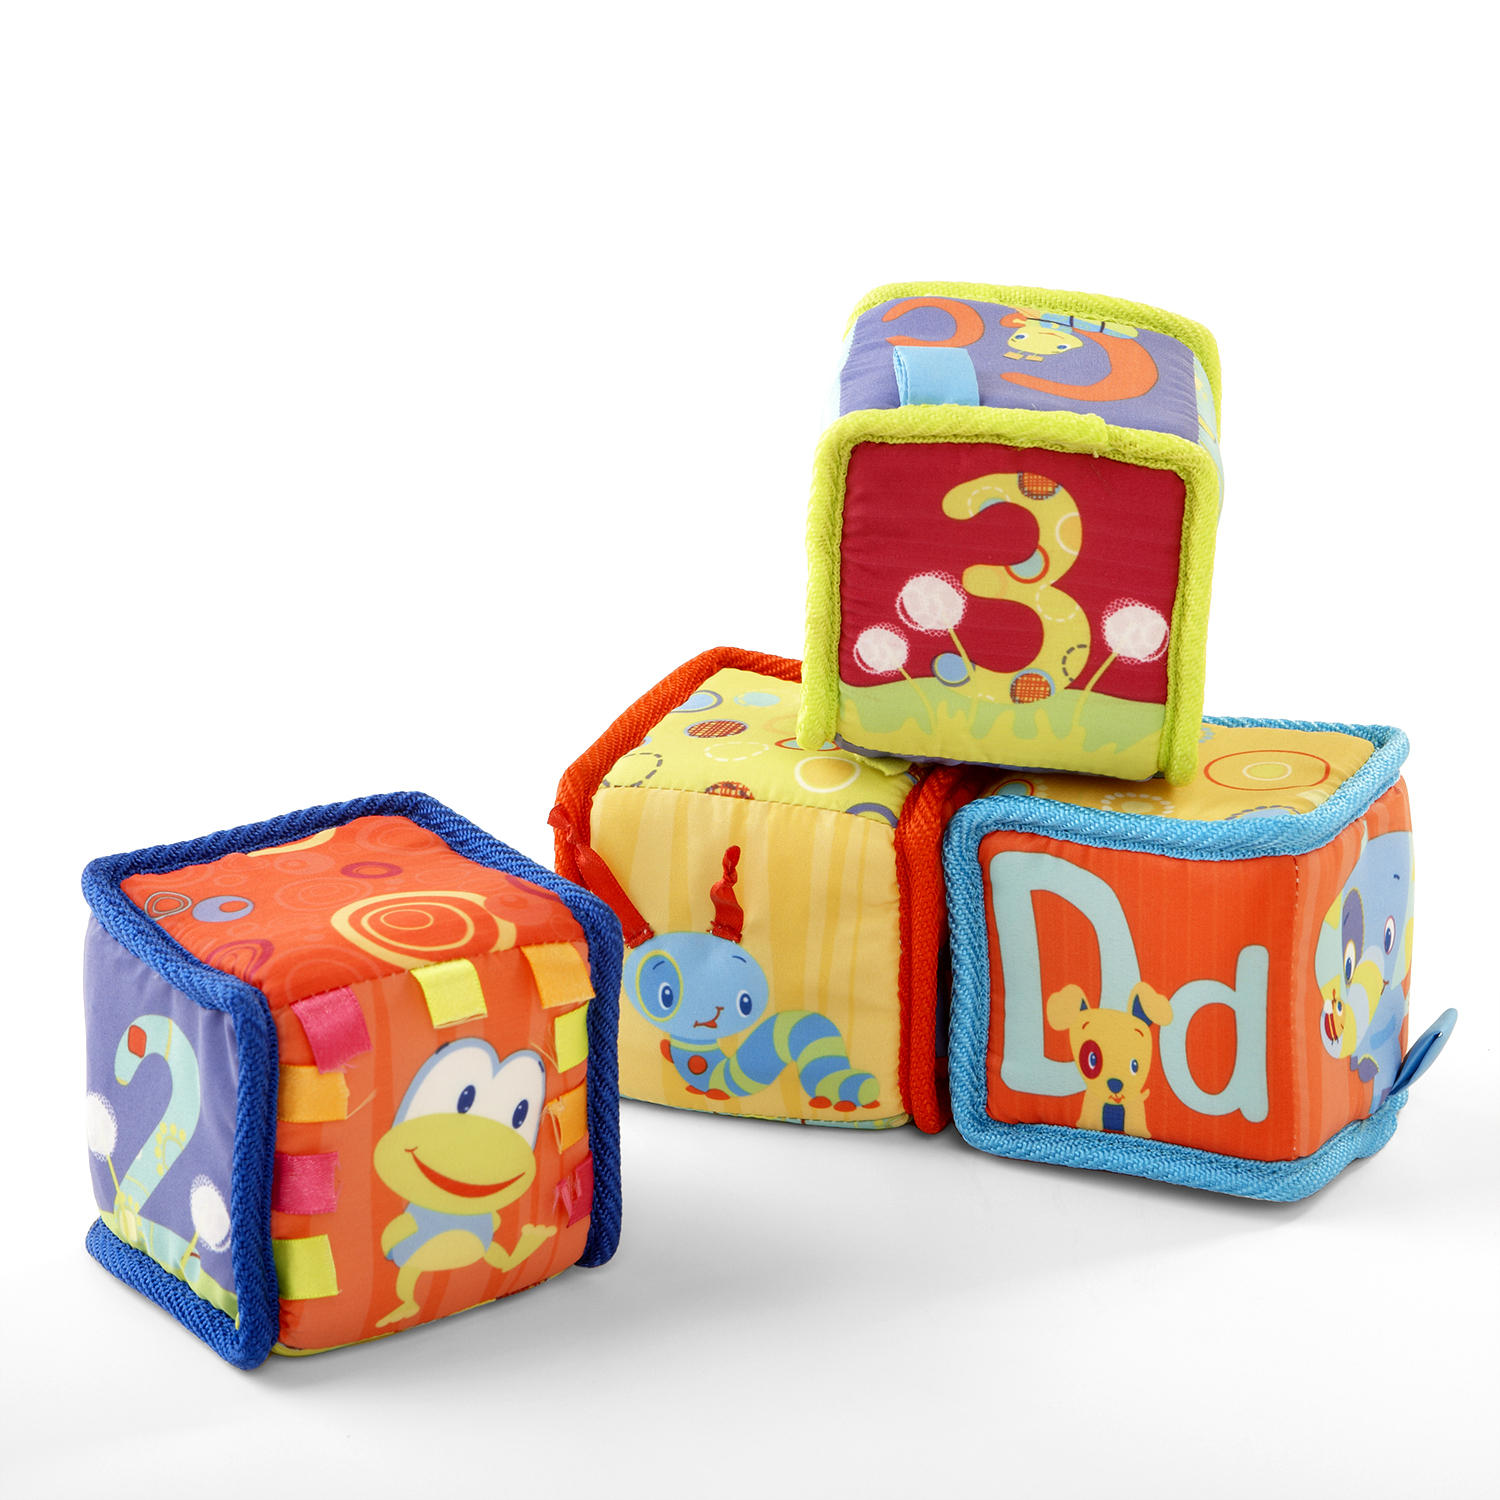 Bright Starts Grab & Stack Blocks Toy